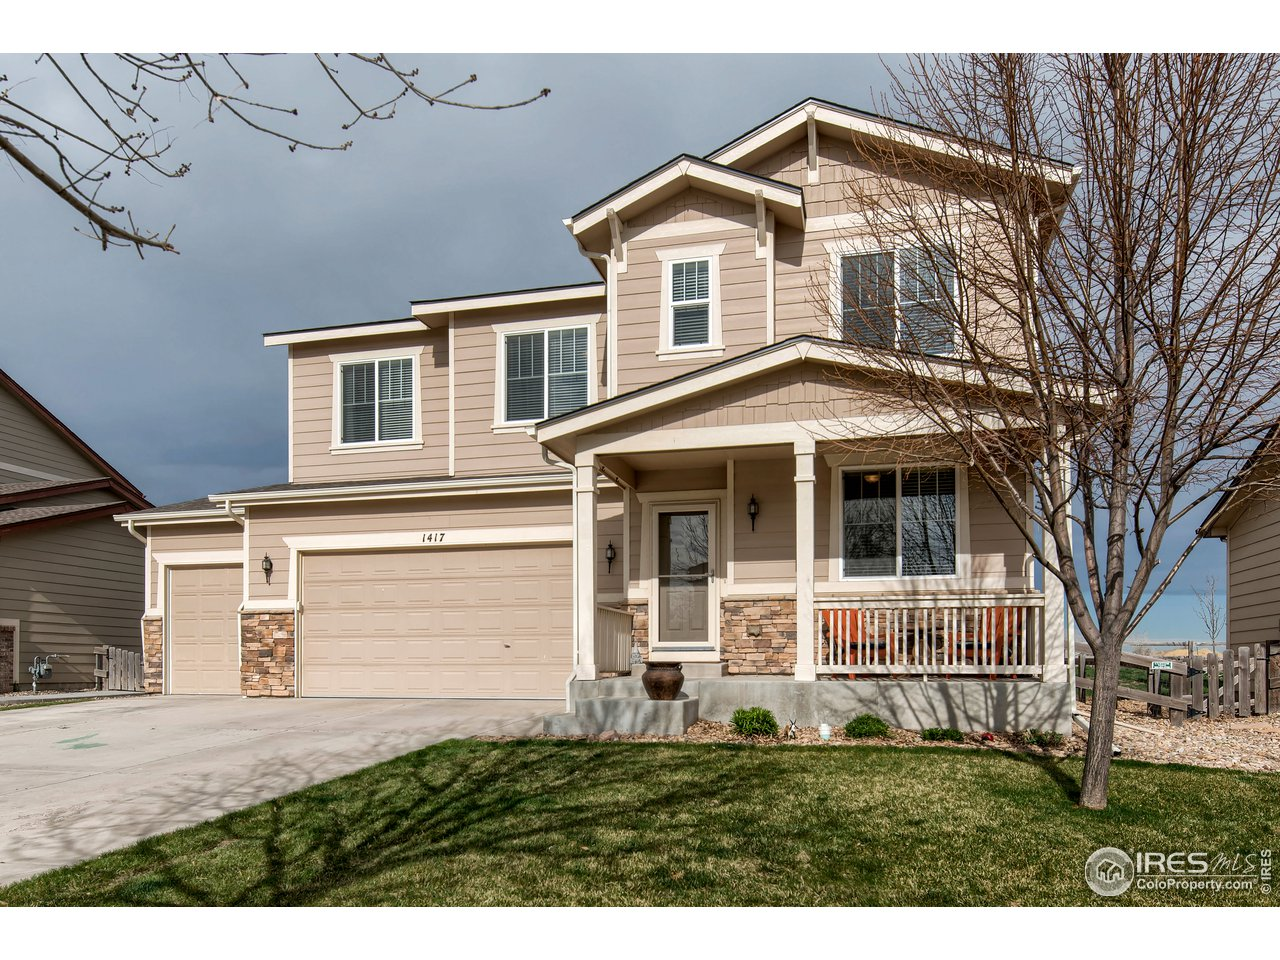 1417 102nd Ave, Greeley CO 80634